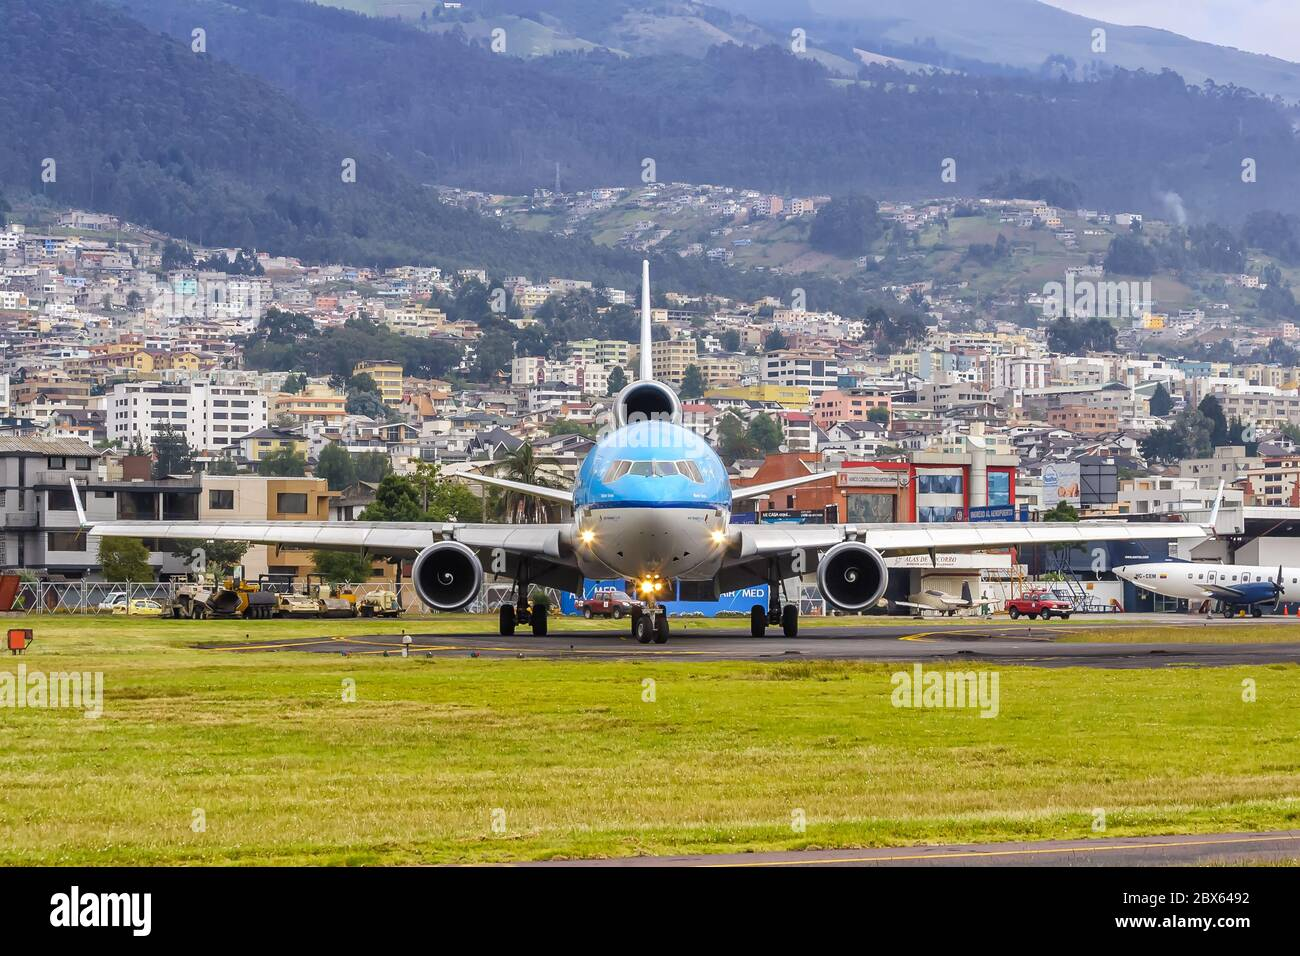 Quito, Ecuador June 16, 2011: KLM Royal Dutch Airlines McDonnell Douglas MD-11 airplane at Quito airport UIO in Ecuador. Stock Photo